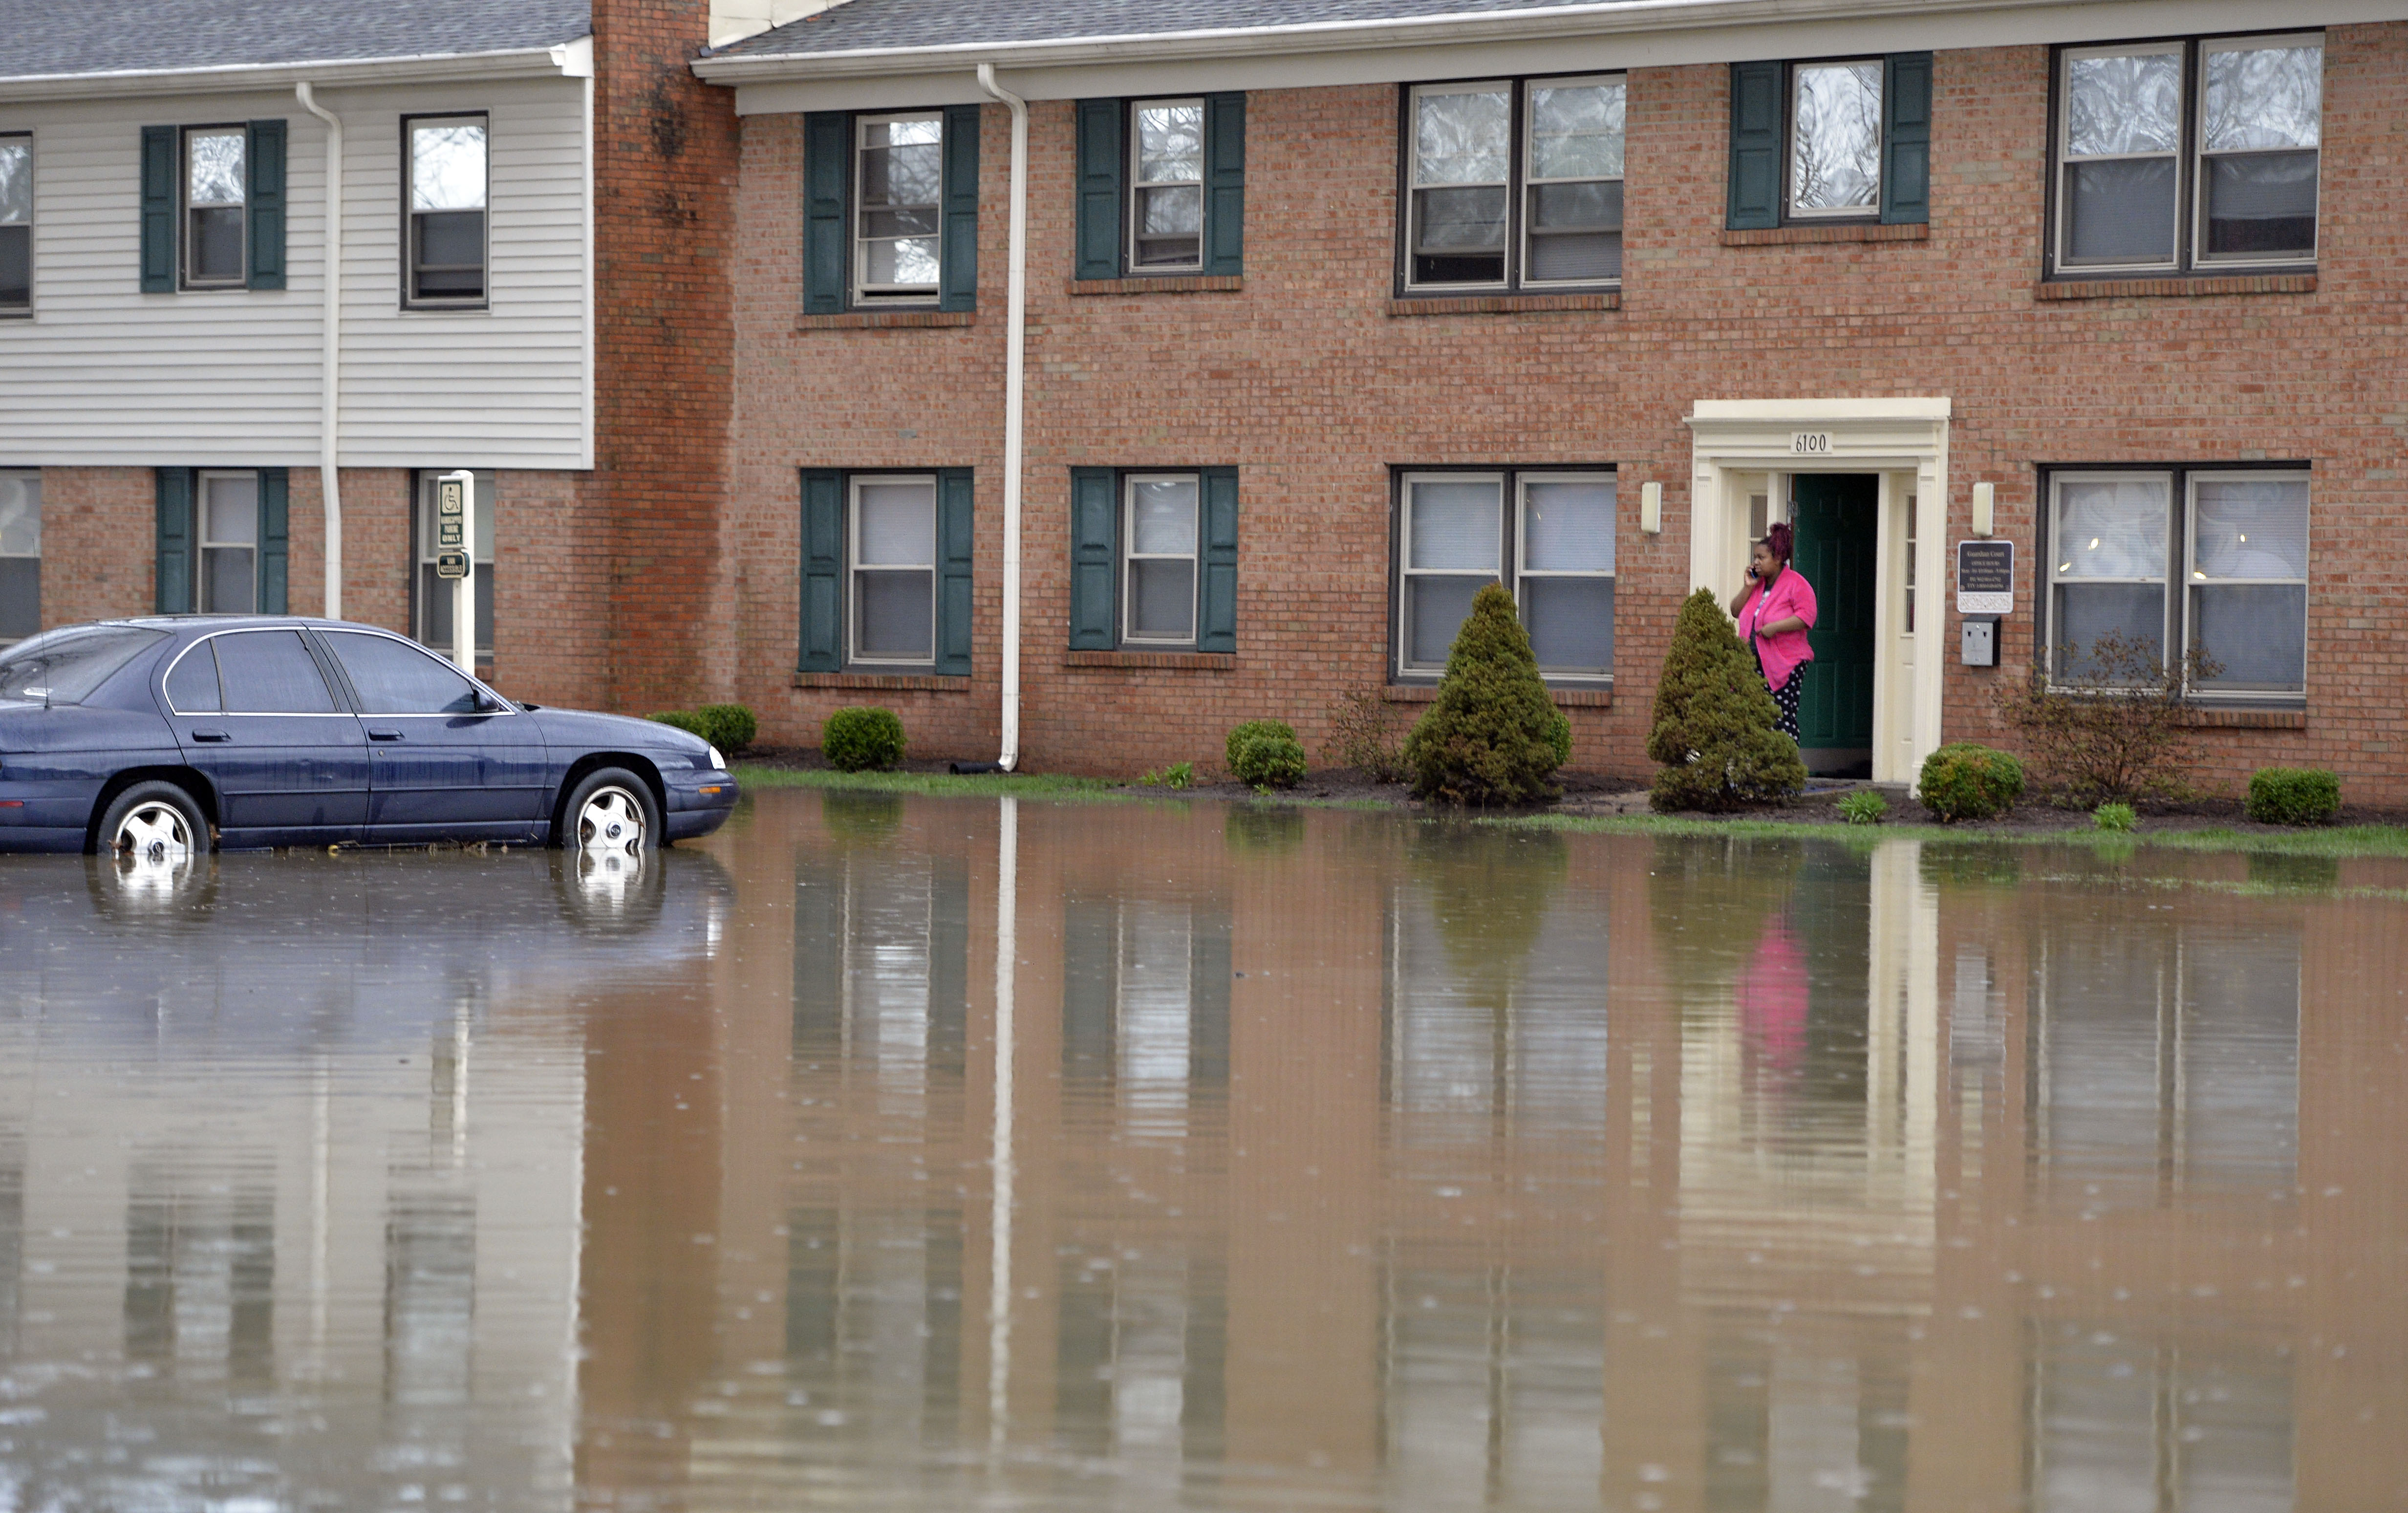 Flooding swamps louisville prompts rescues and evacuations as a rubansaba